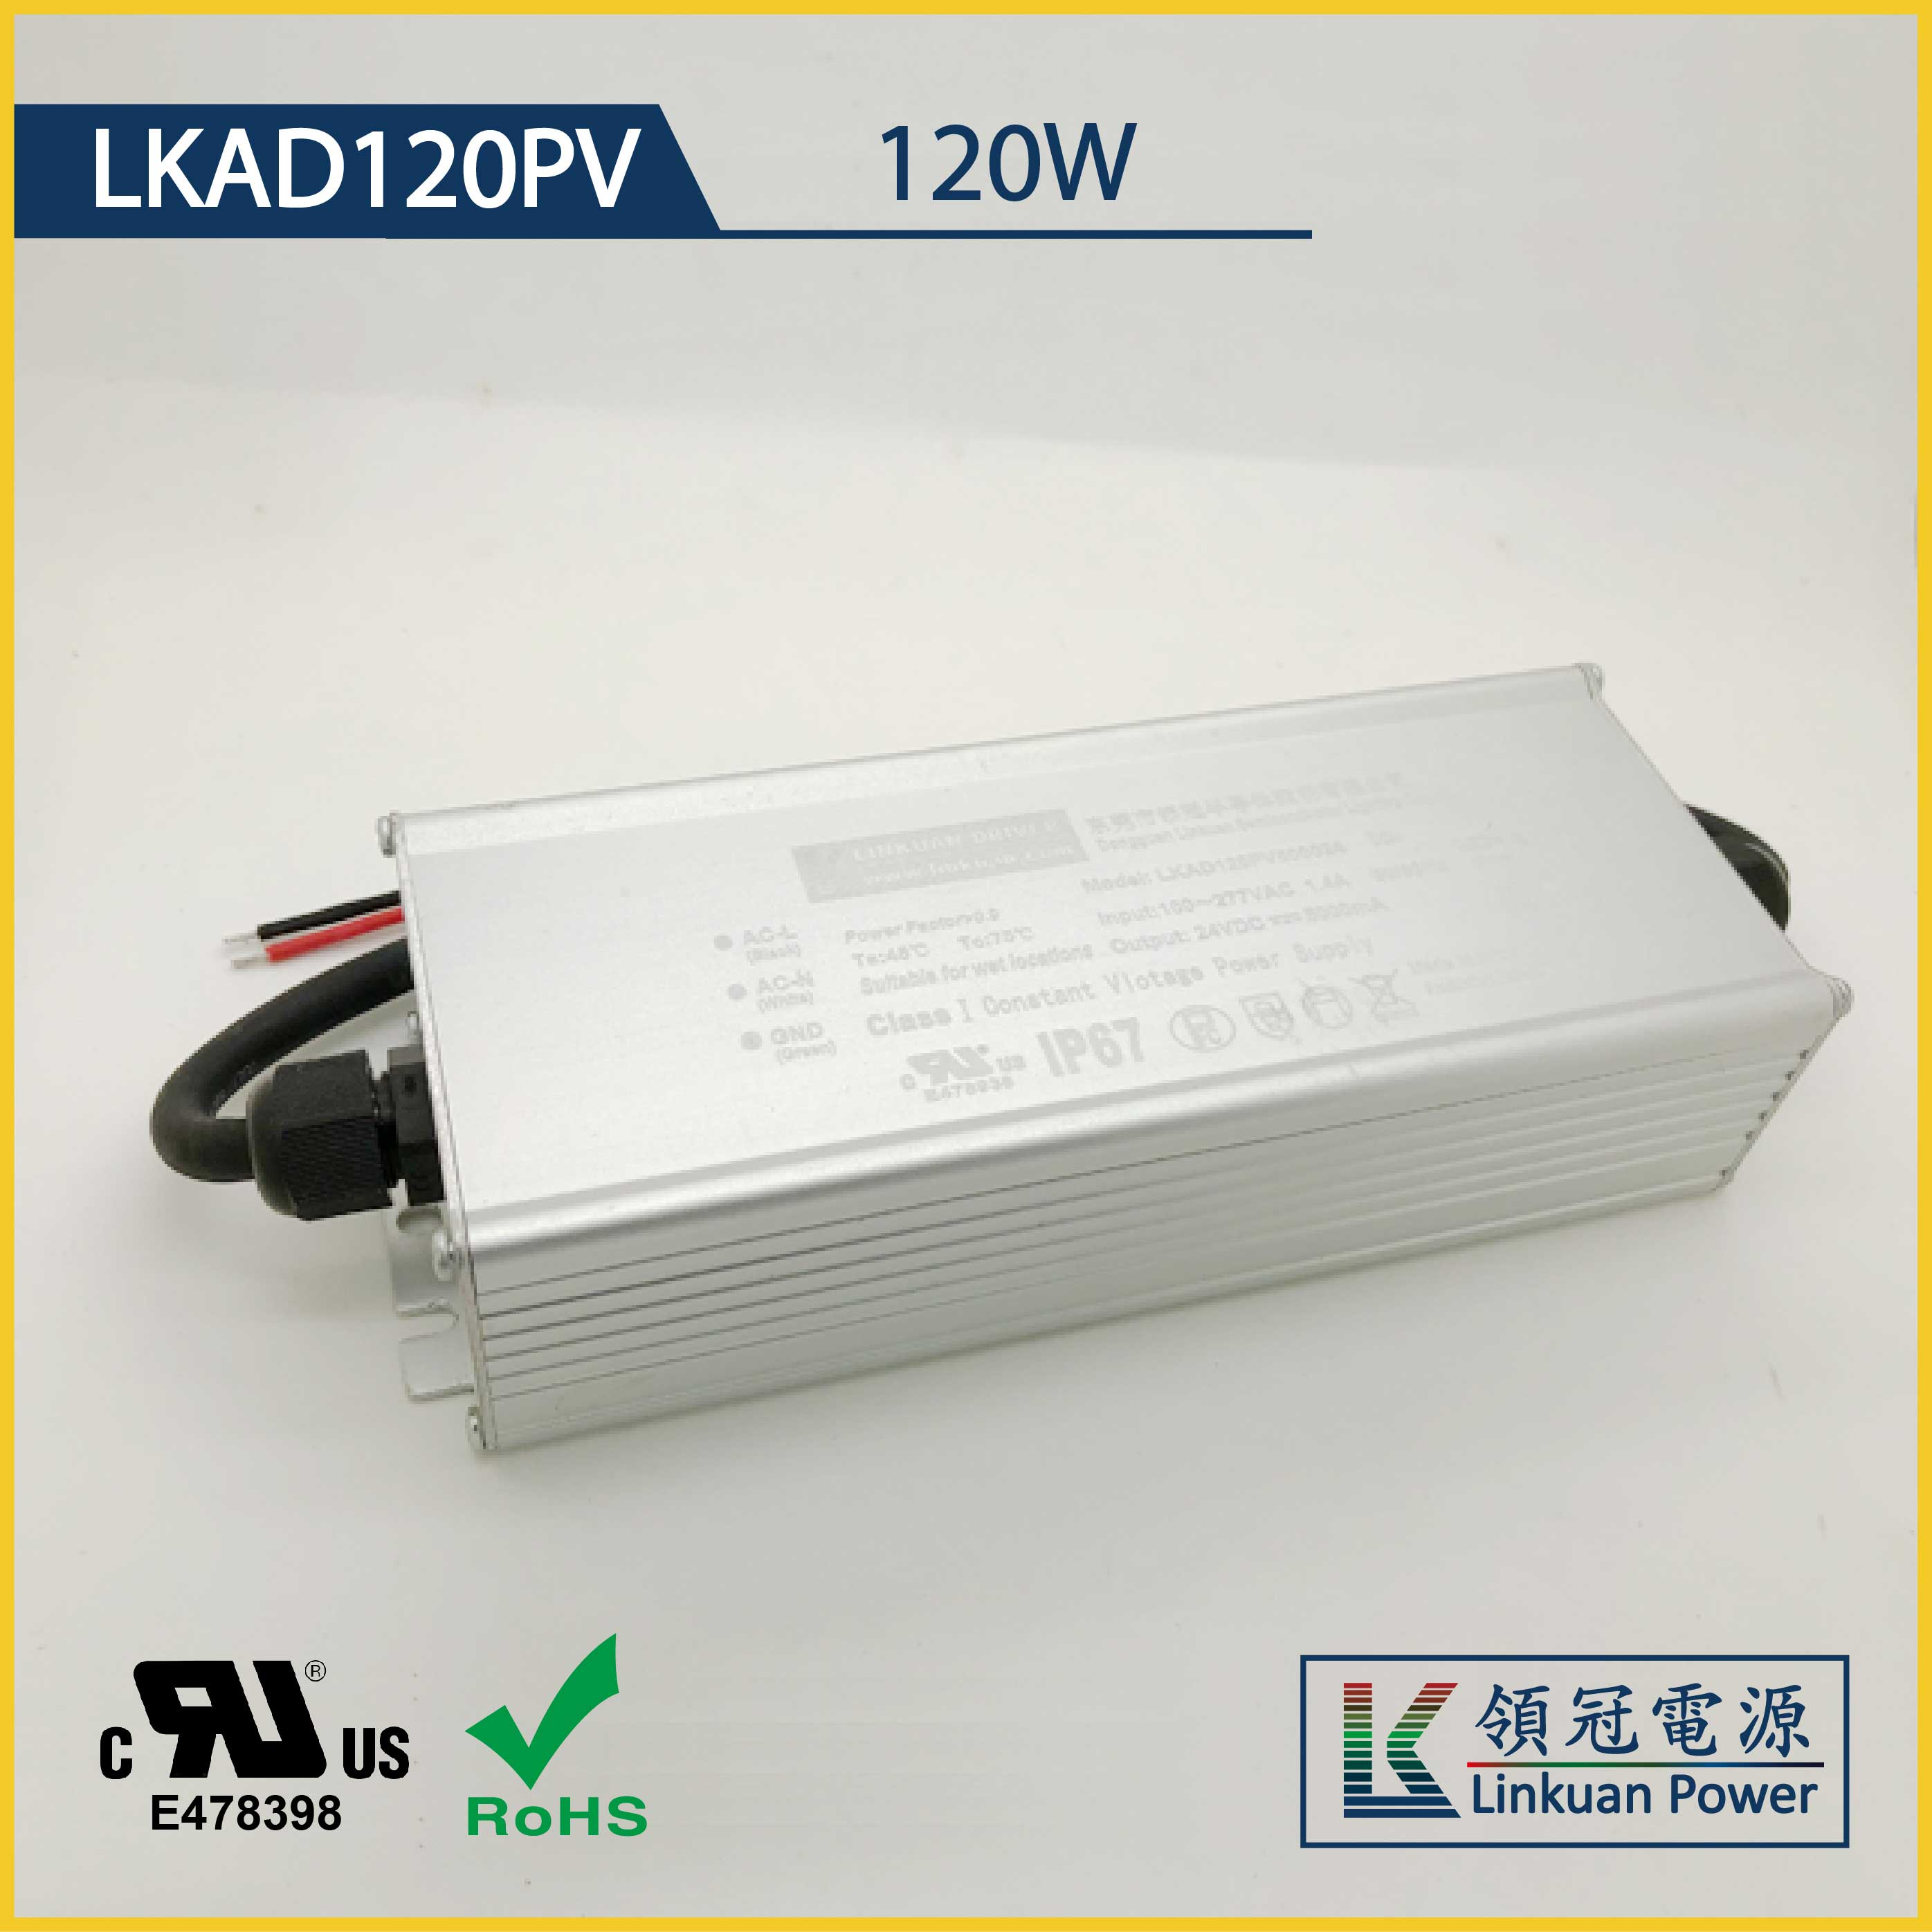 LKAD120PV 120W constant voltage 12/24V 5000mA LED drivers